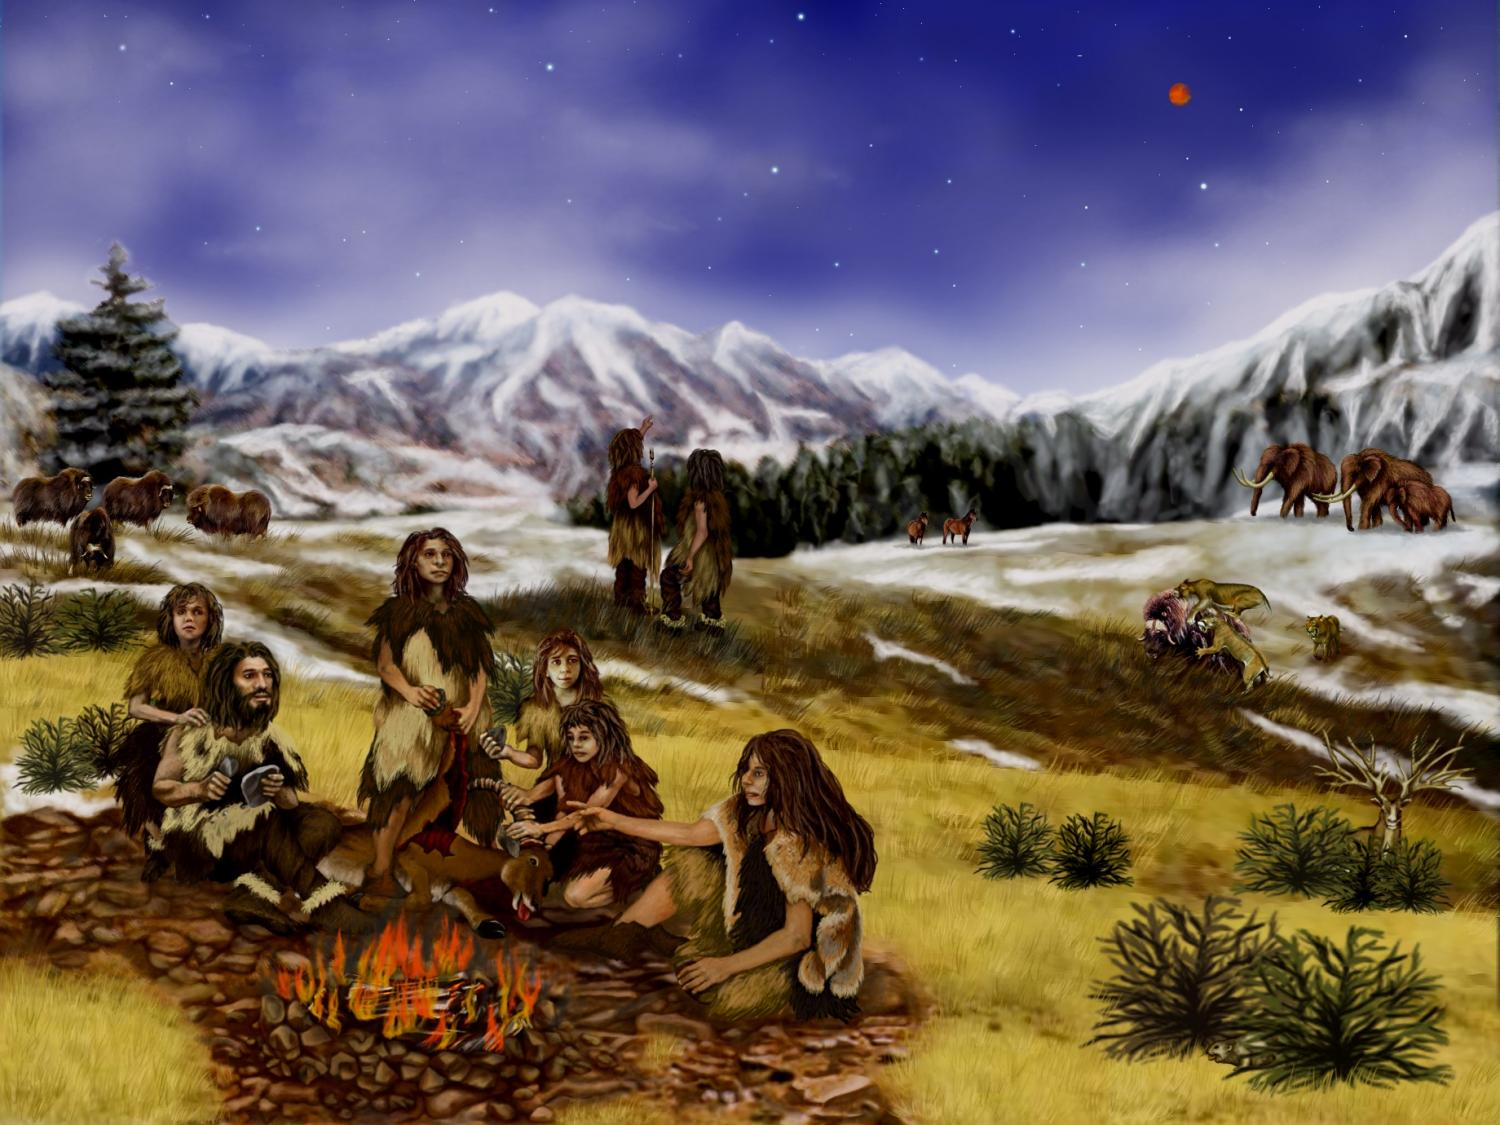 the life of the neandertals Life at the edge iolo's natural history of wales with the ice age's warm phase, neanderthal man moved into wales, then the fringe of the human world.